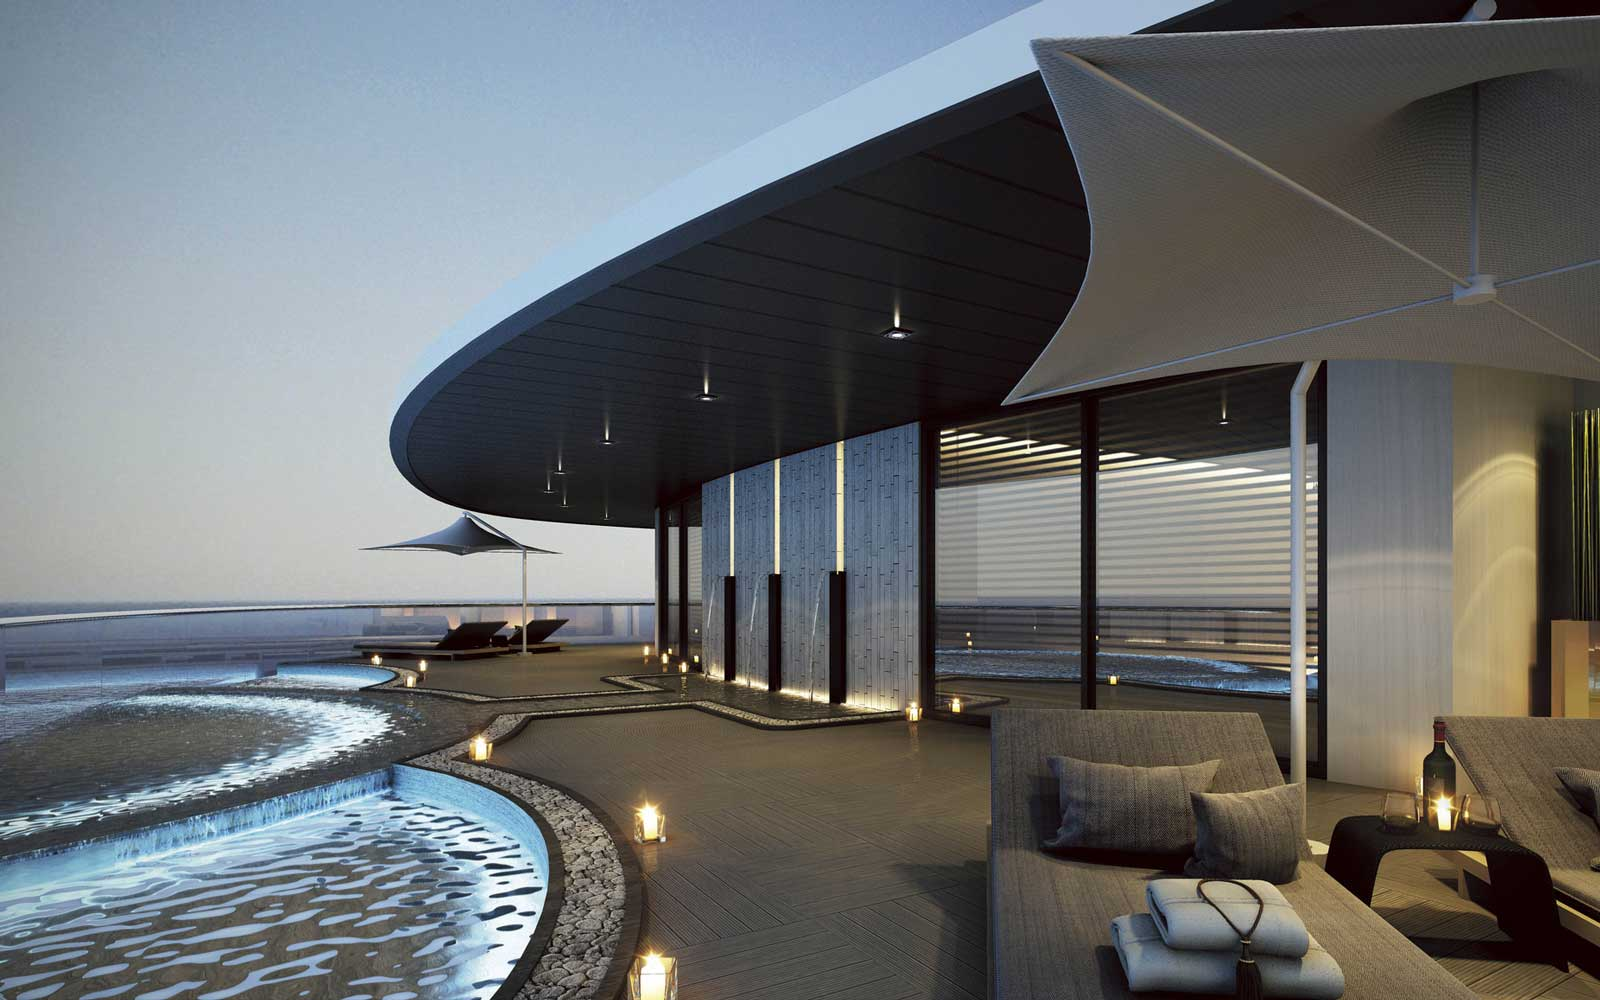 Spa terrace of the Scenic Eclipse luxury cruise ship